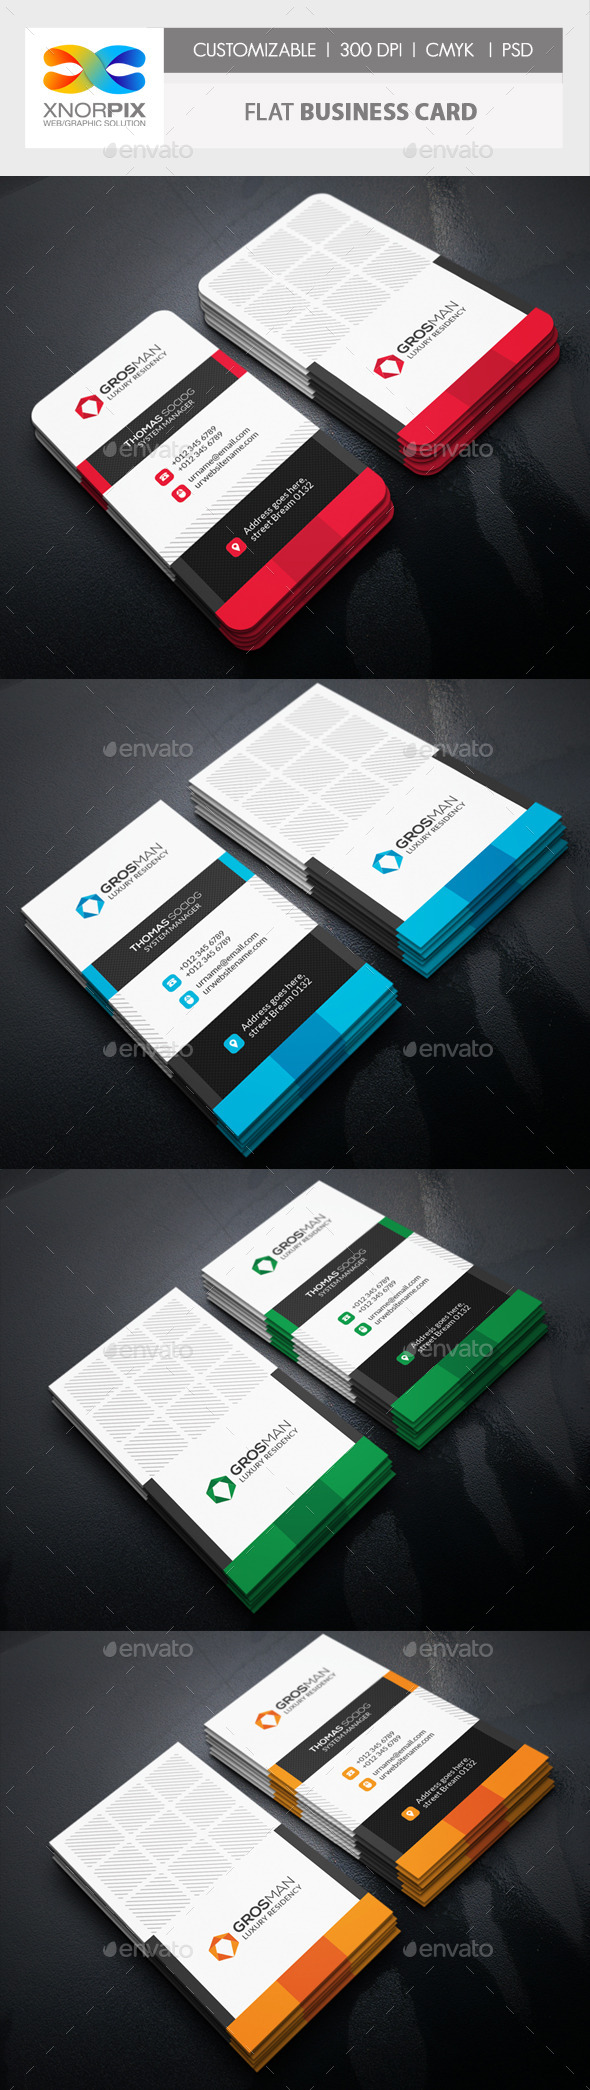 GraphicRiver Flat Business Card 11299207